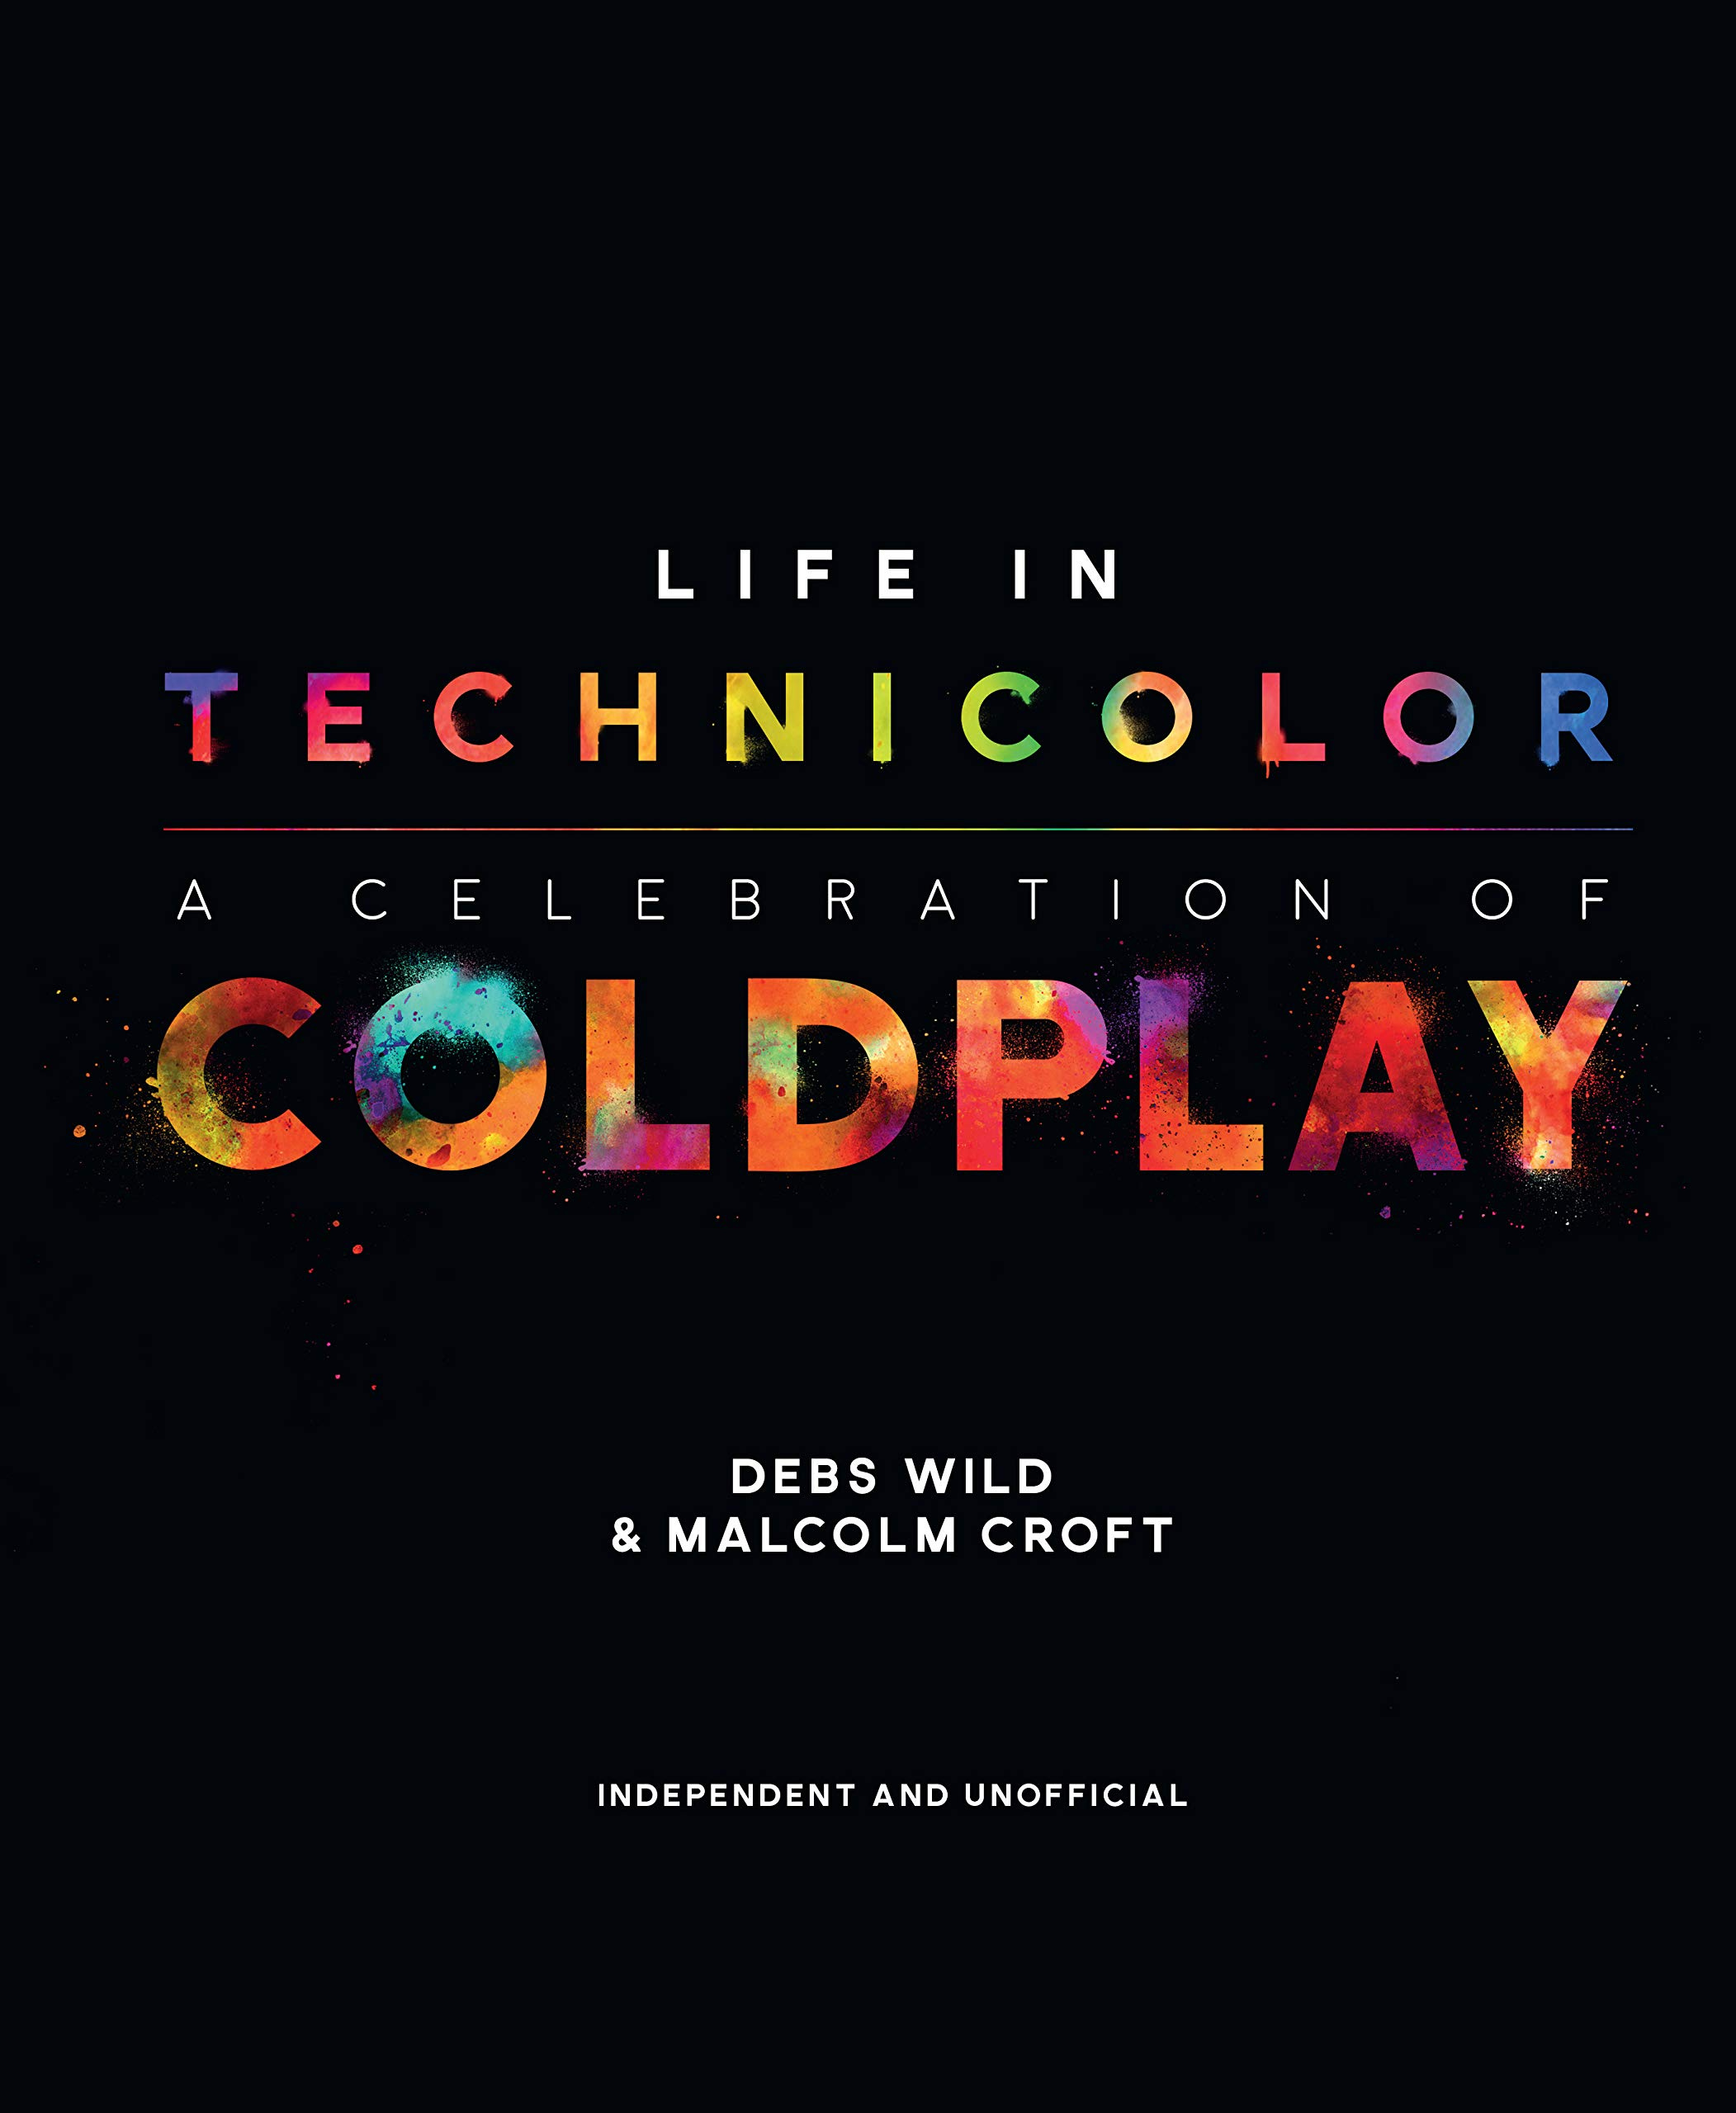 Life in Technicolor: A Celebration of Coldplay: Debs Wild